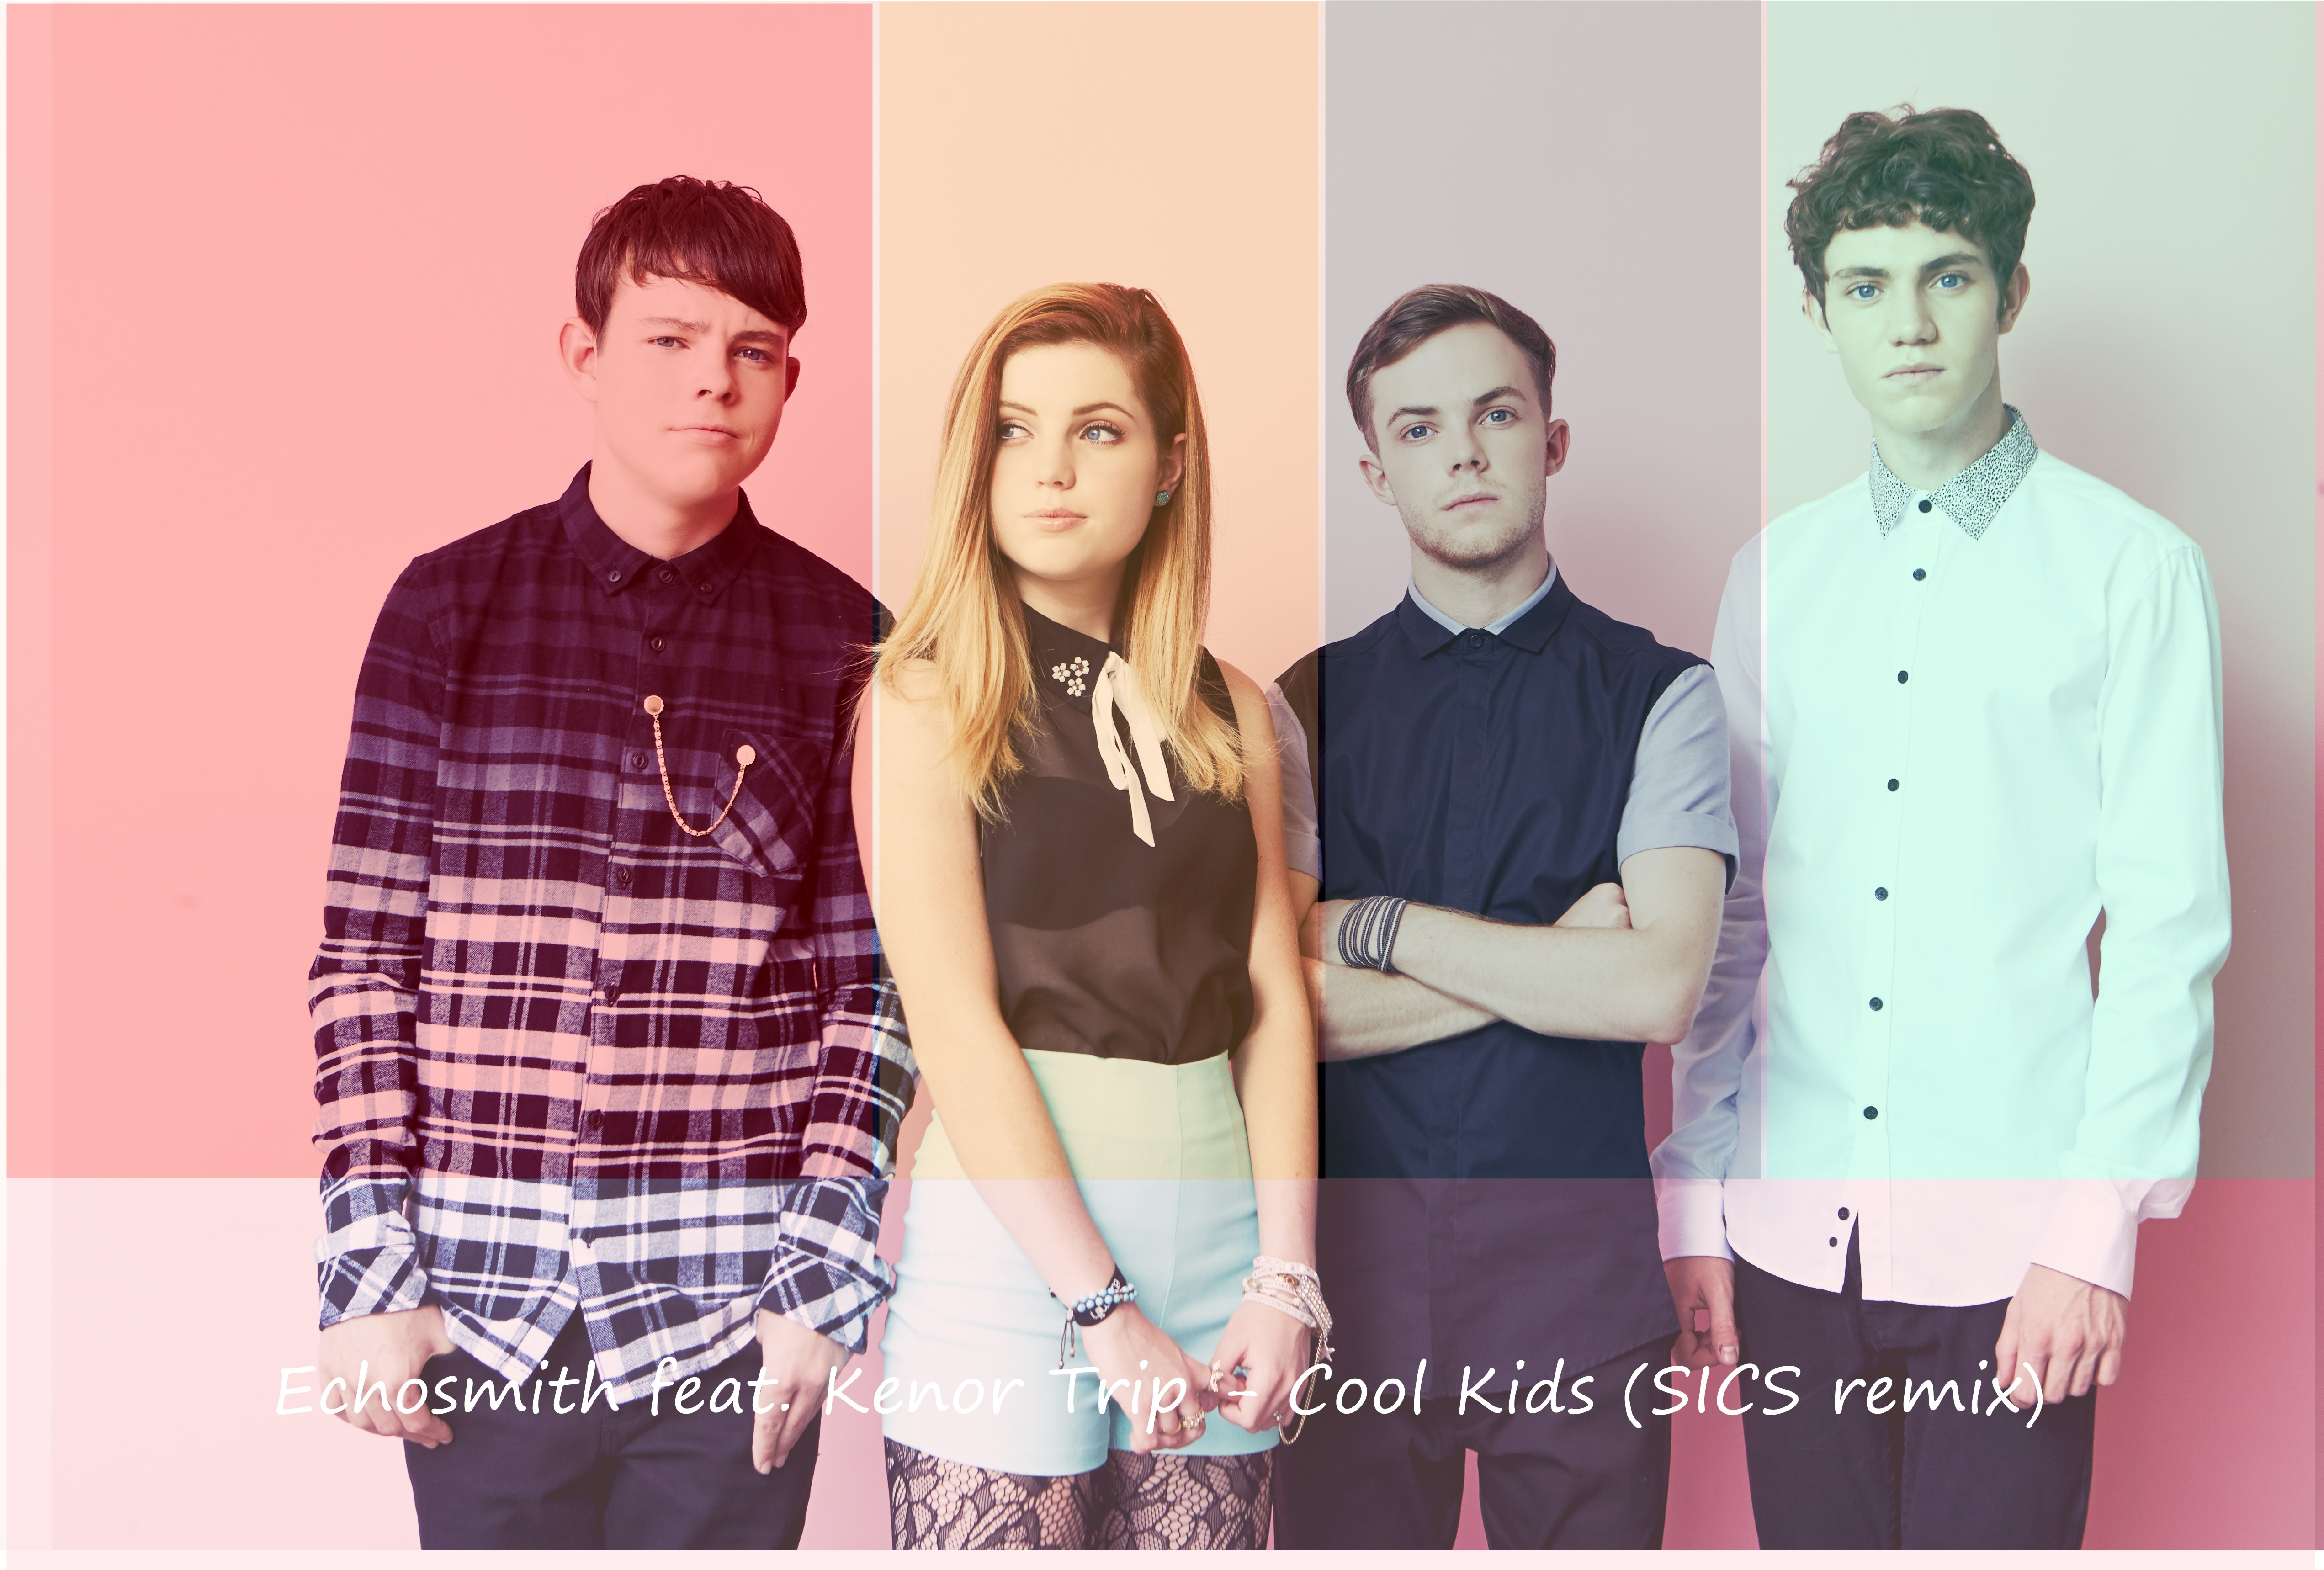 Echosmith Feat. Kenor Trip - Cool Kids (SICS Remix)